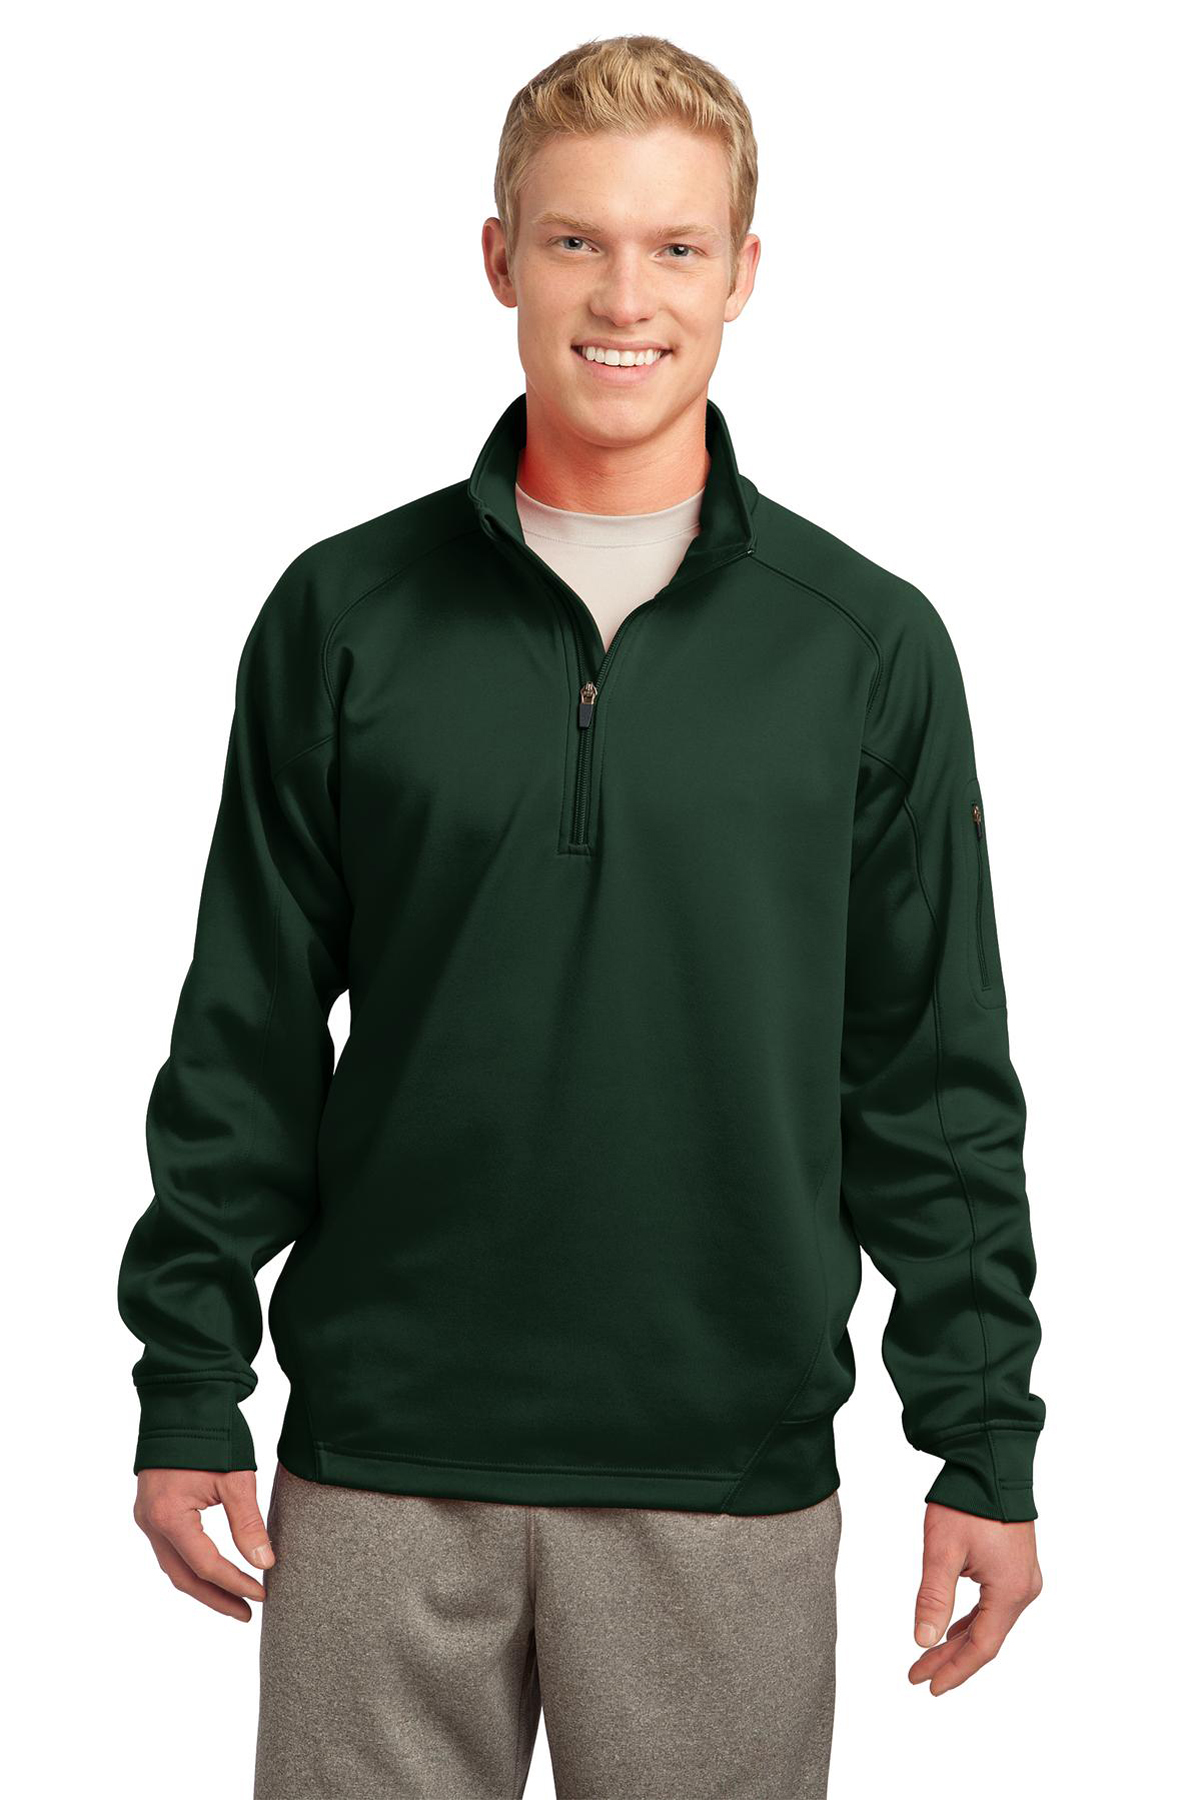 Sweatshirts-Fleece-Half-Quarter-Zip-5